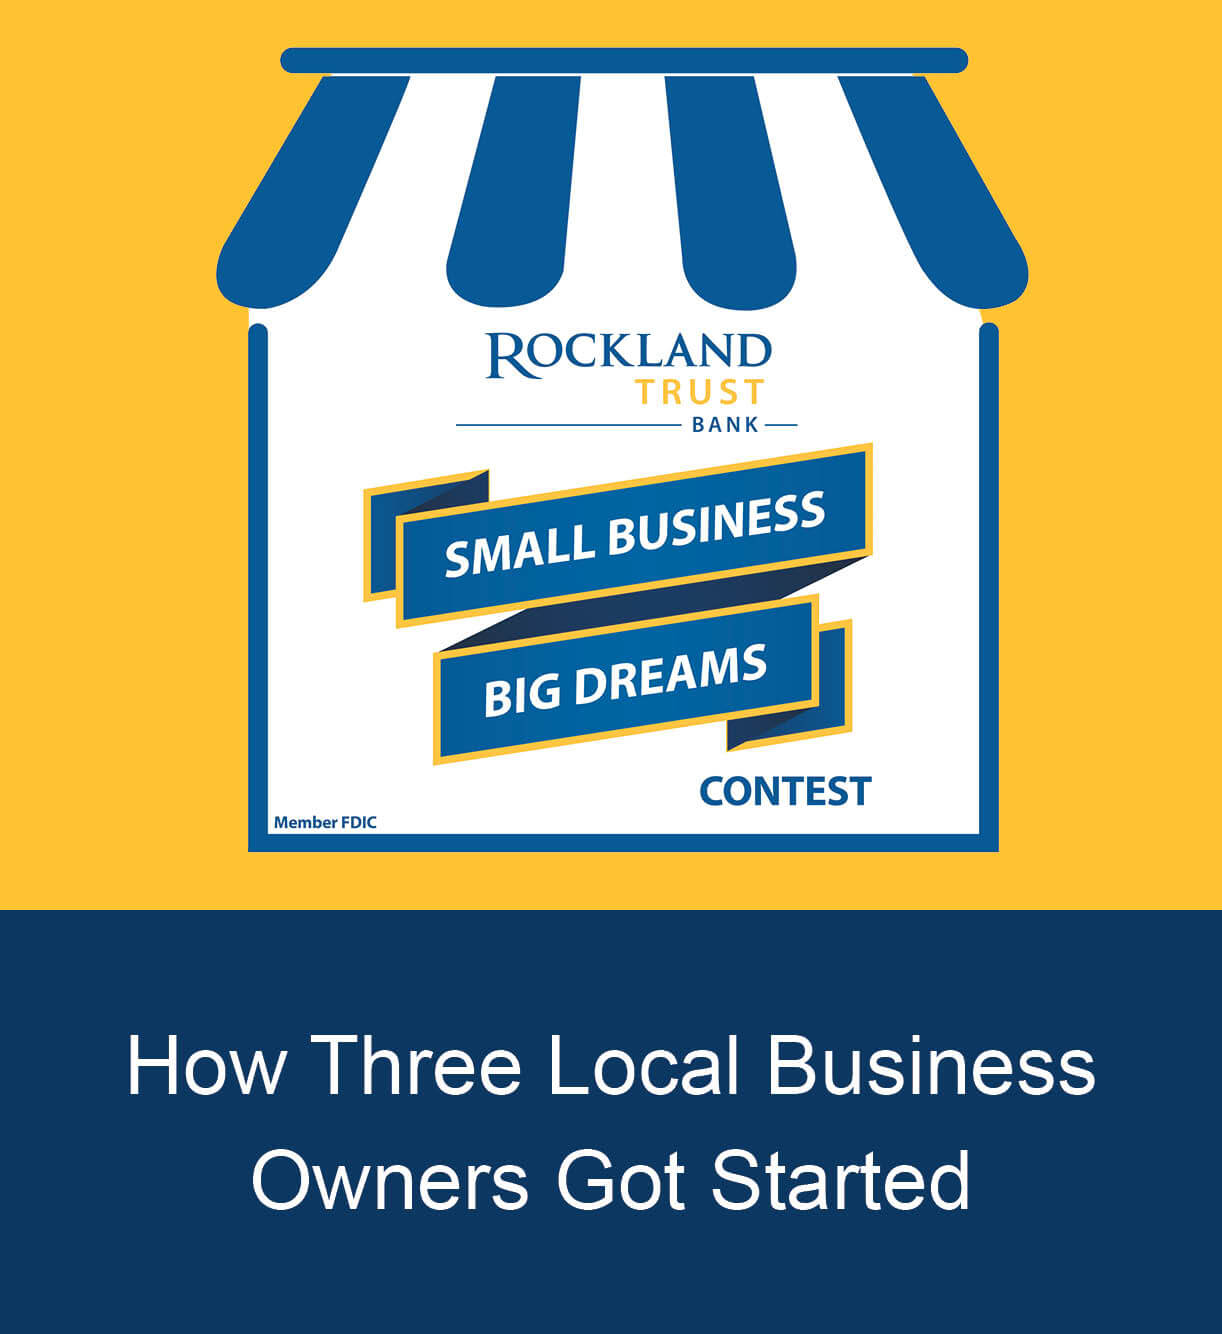 How Three Local Business Owners got Started